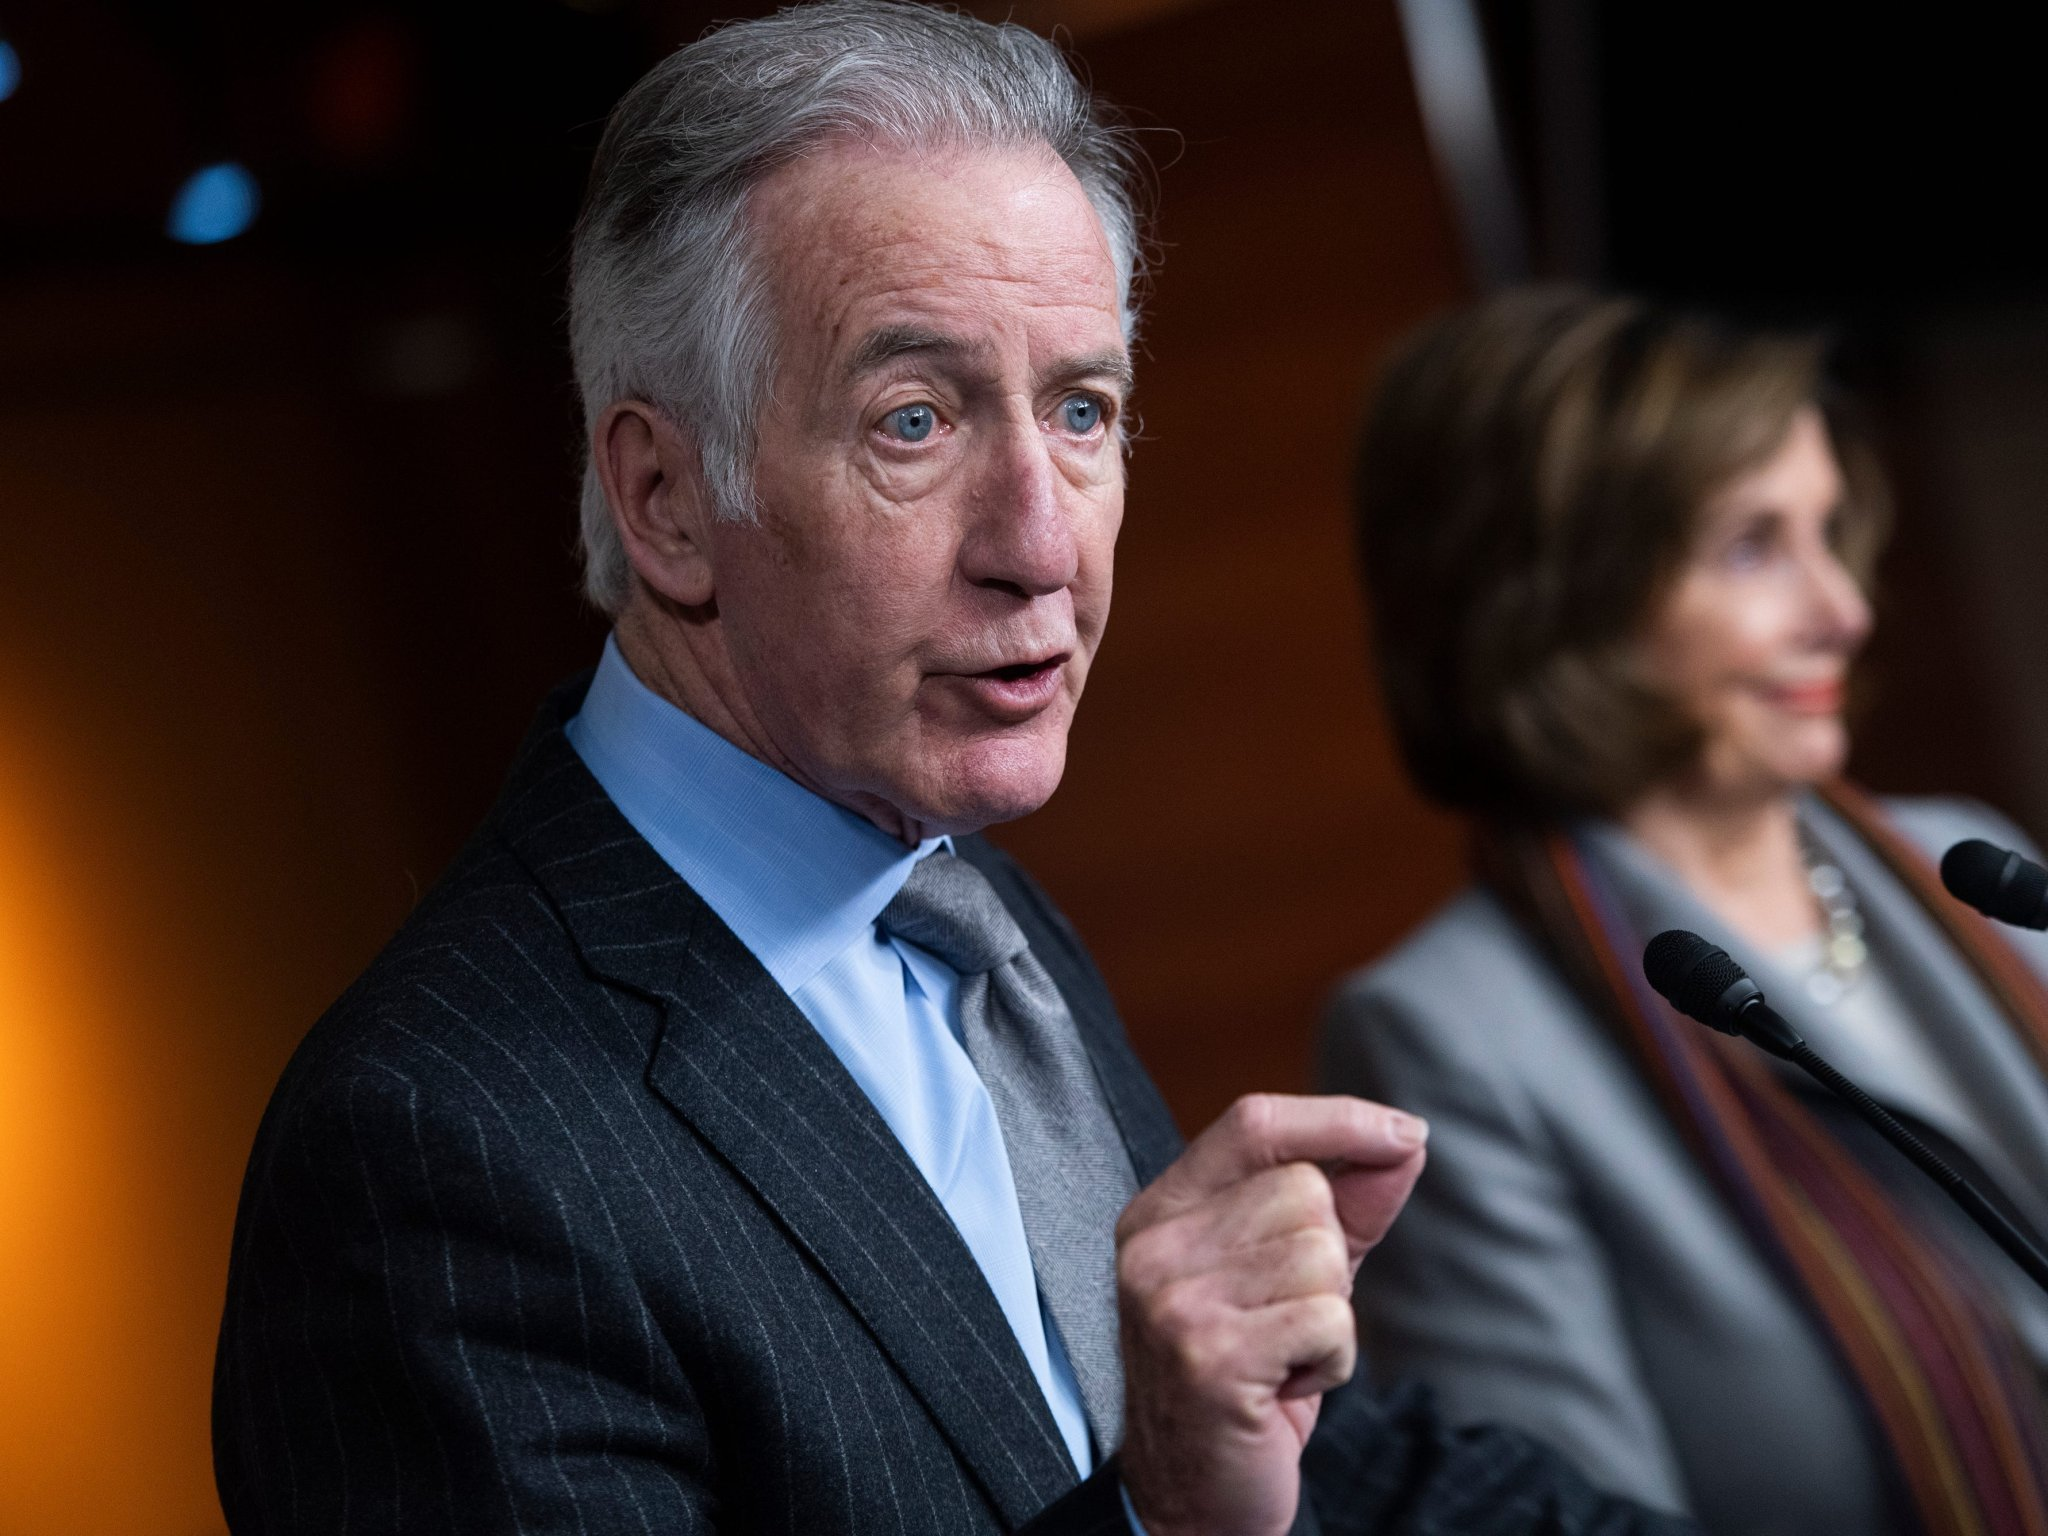 House Democrats unveil plan to raise taxes on Amazon, Microsoft, and other wealthy corporations and Americans making over $5 million